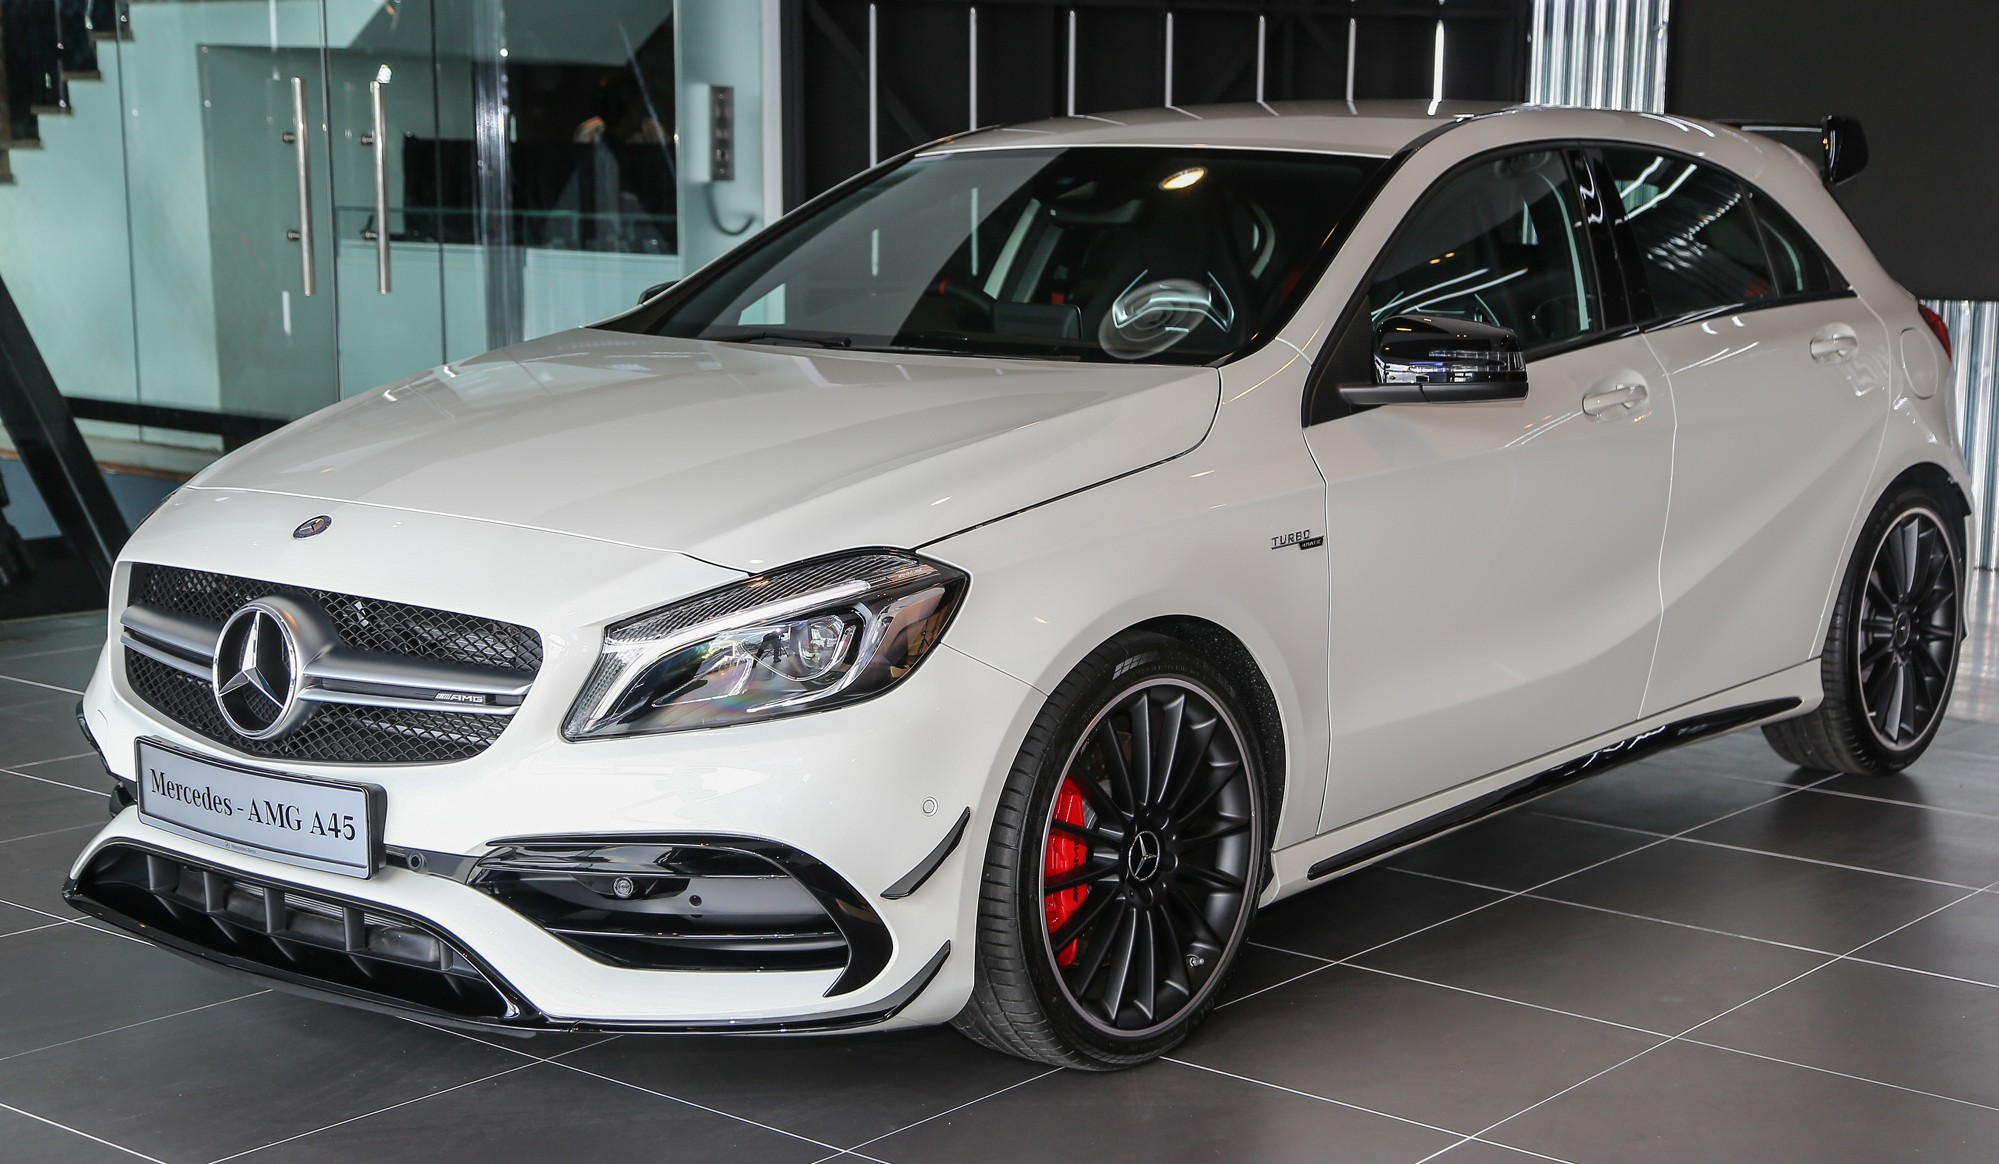 Mercedes amg a45 facelift in m 39 sia 381 hp rm349k for Mercedes benz a45 amg